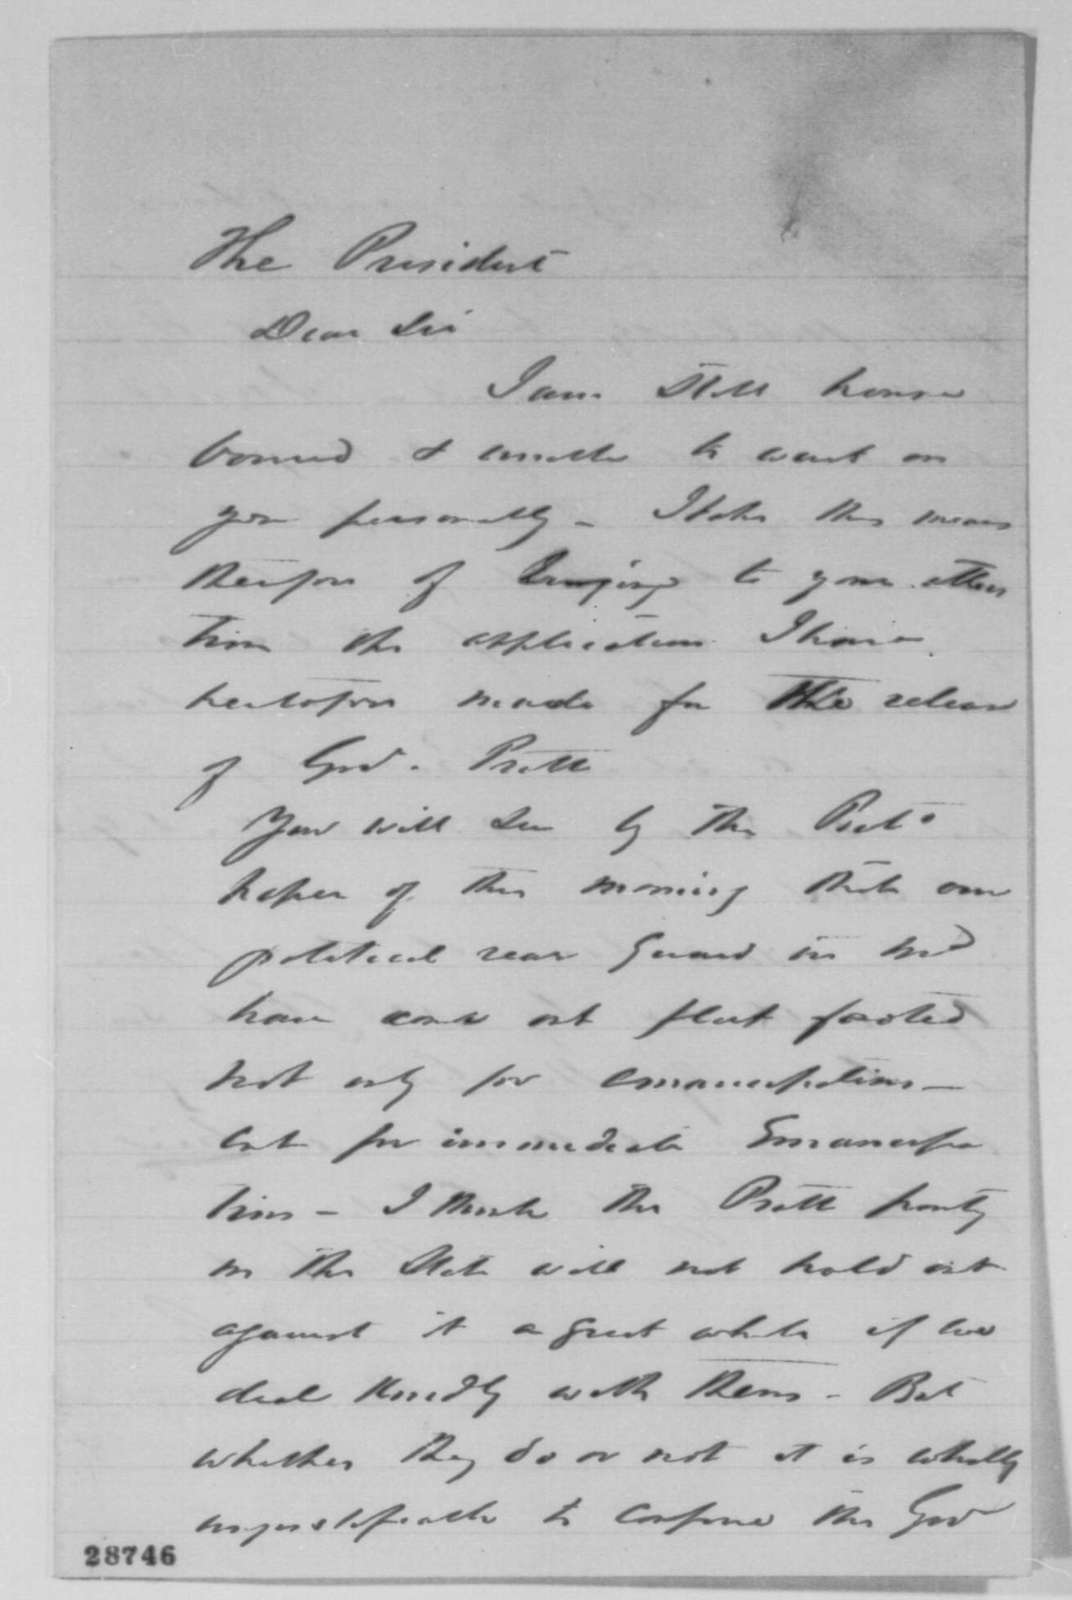 Montgomery Blair to Abraham Lincoln, Friday, December 18, 1863  (Thomas G. Pratt and political affairs in Maryland)